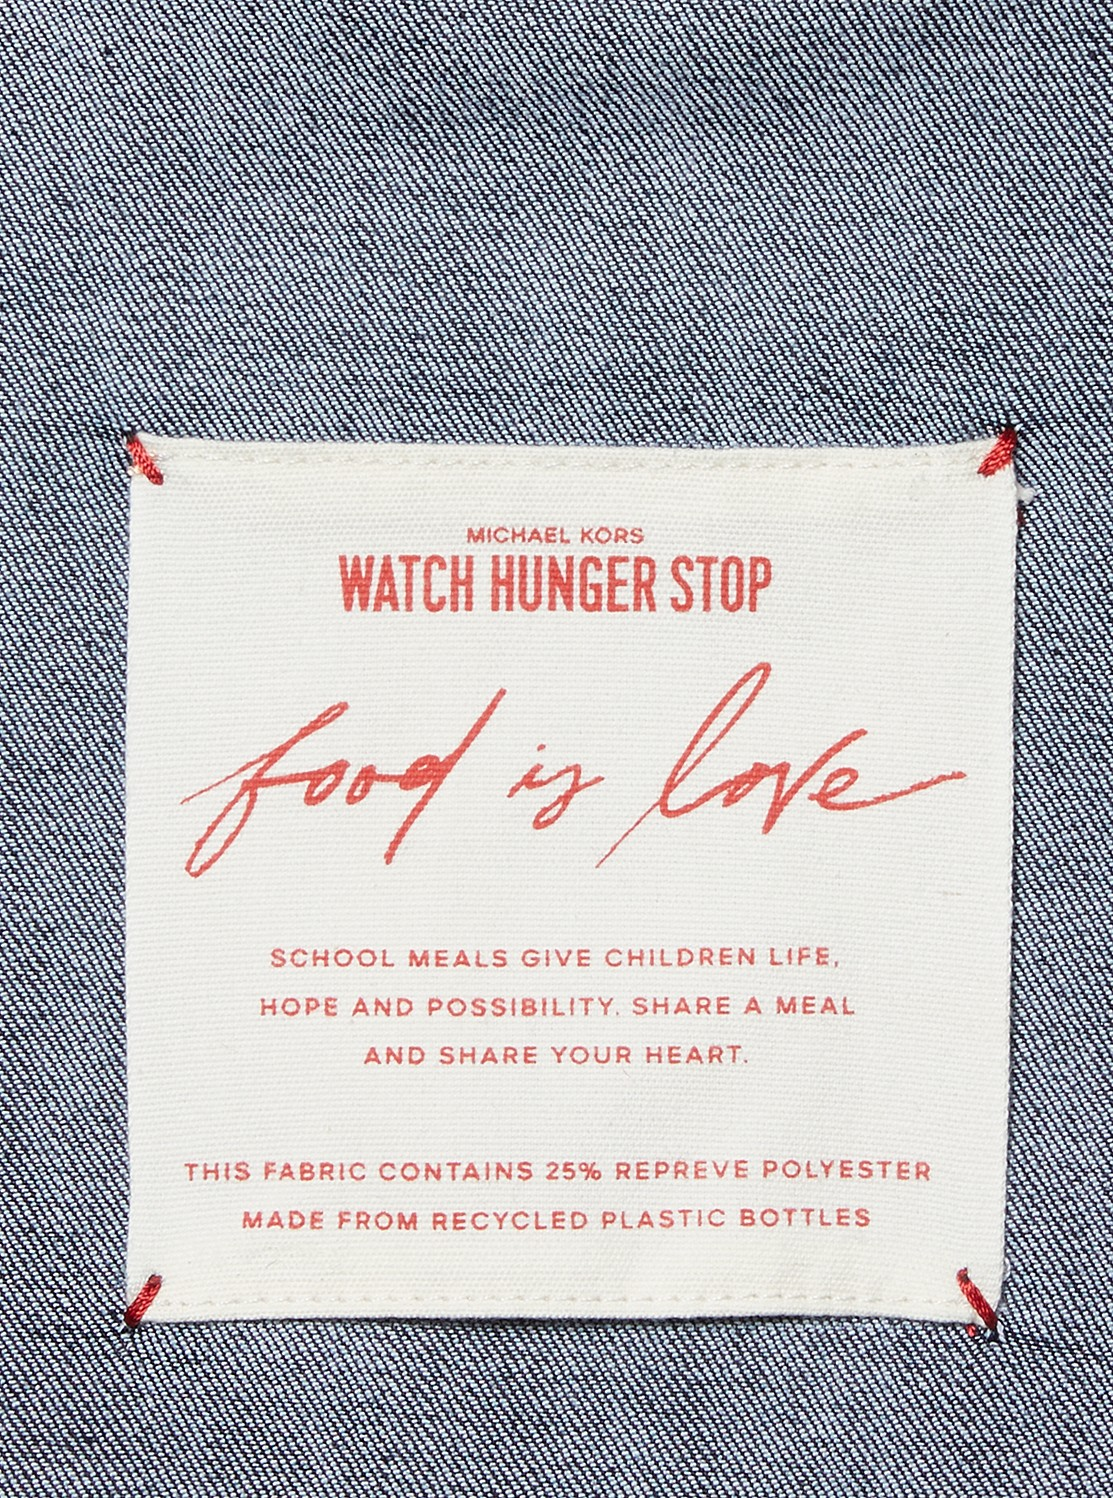 Watch Hunger Stop 2020 LOVEトートバッグ - チャリティ